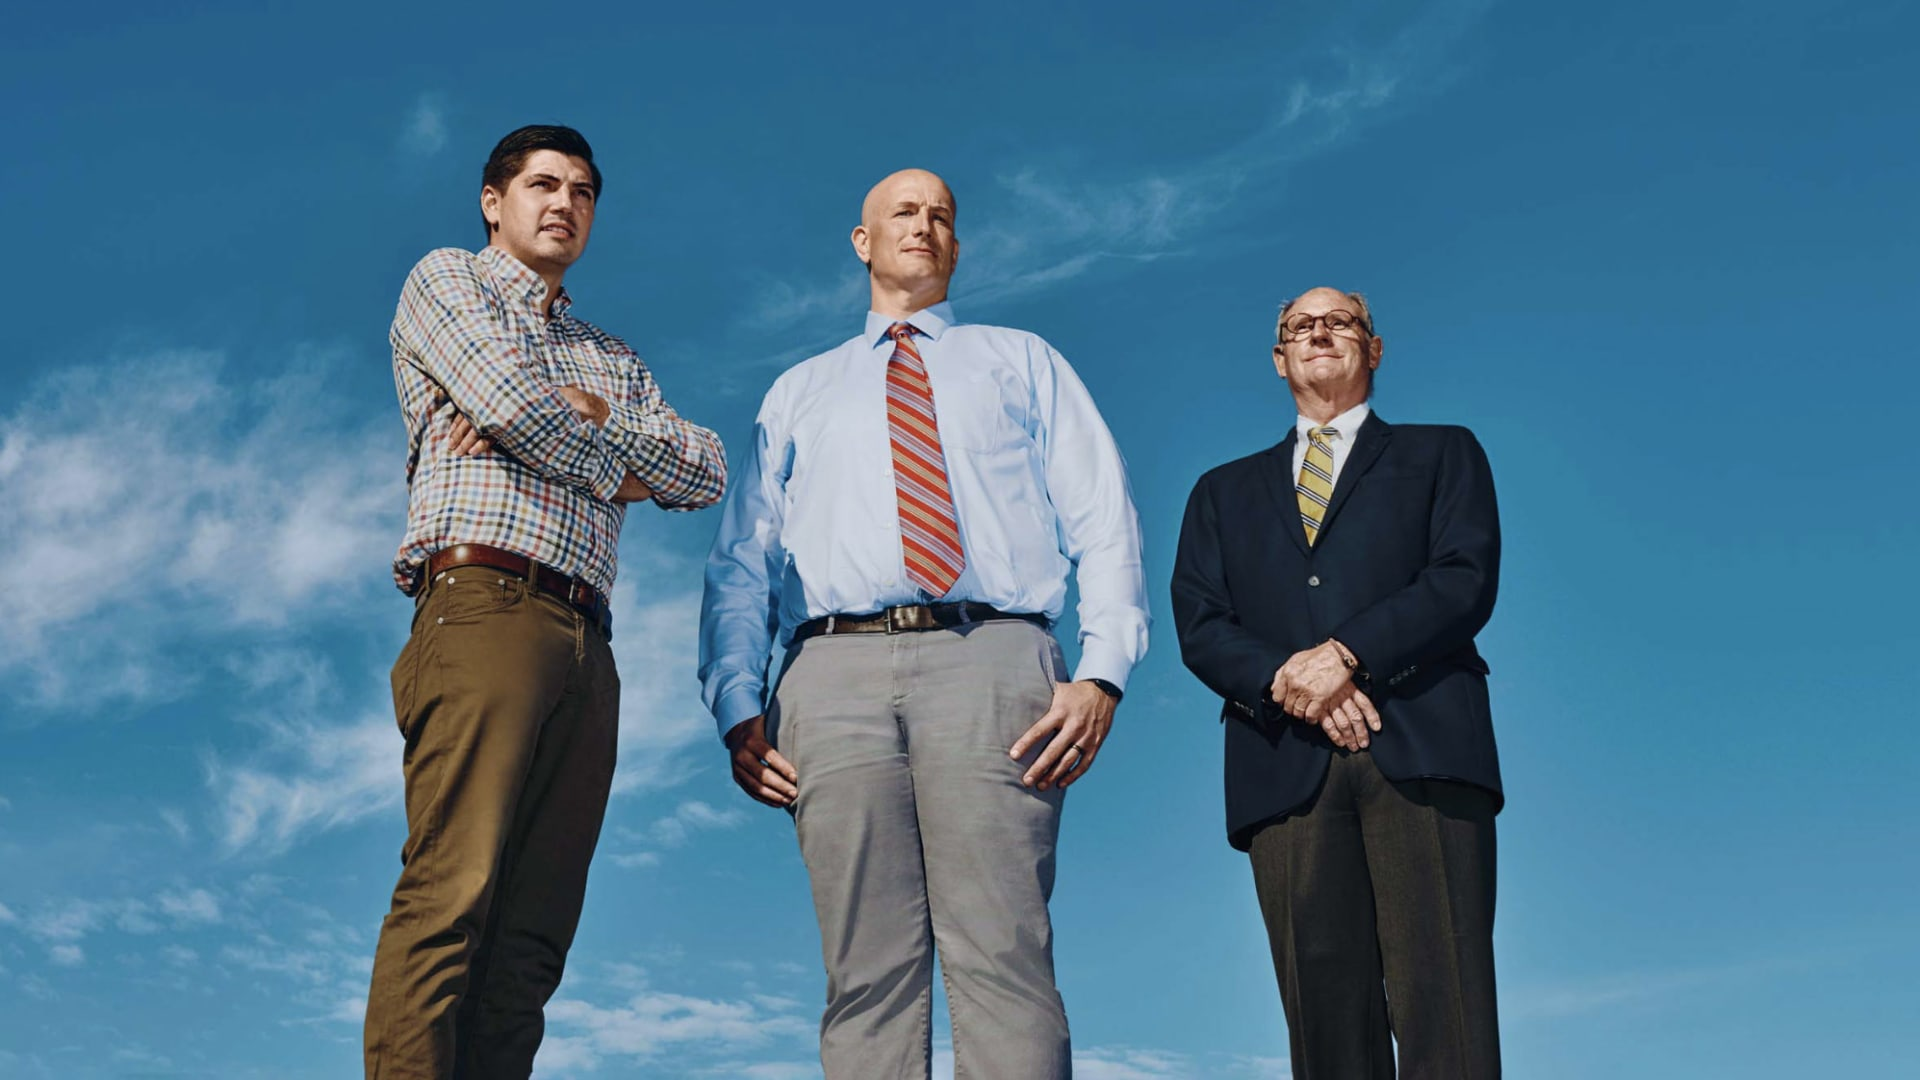 Derek McKenney, senior manufacturing engineer, Scott Wellman, interim general manager, and Timothy Templet, head of global sales, have helped make Puritan a hero of the pandemic. Templet's grandfather founded the company during the 1918 influenze pandemic